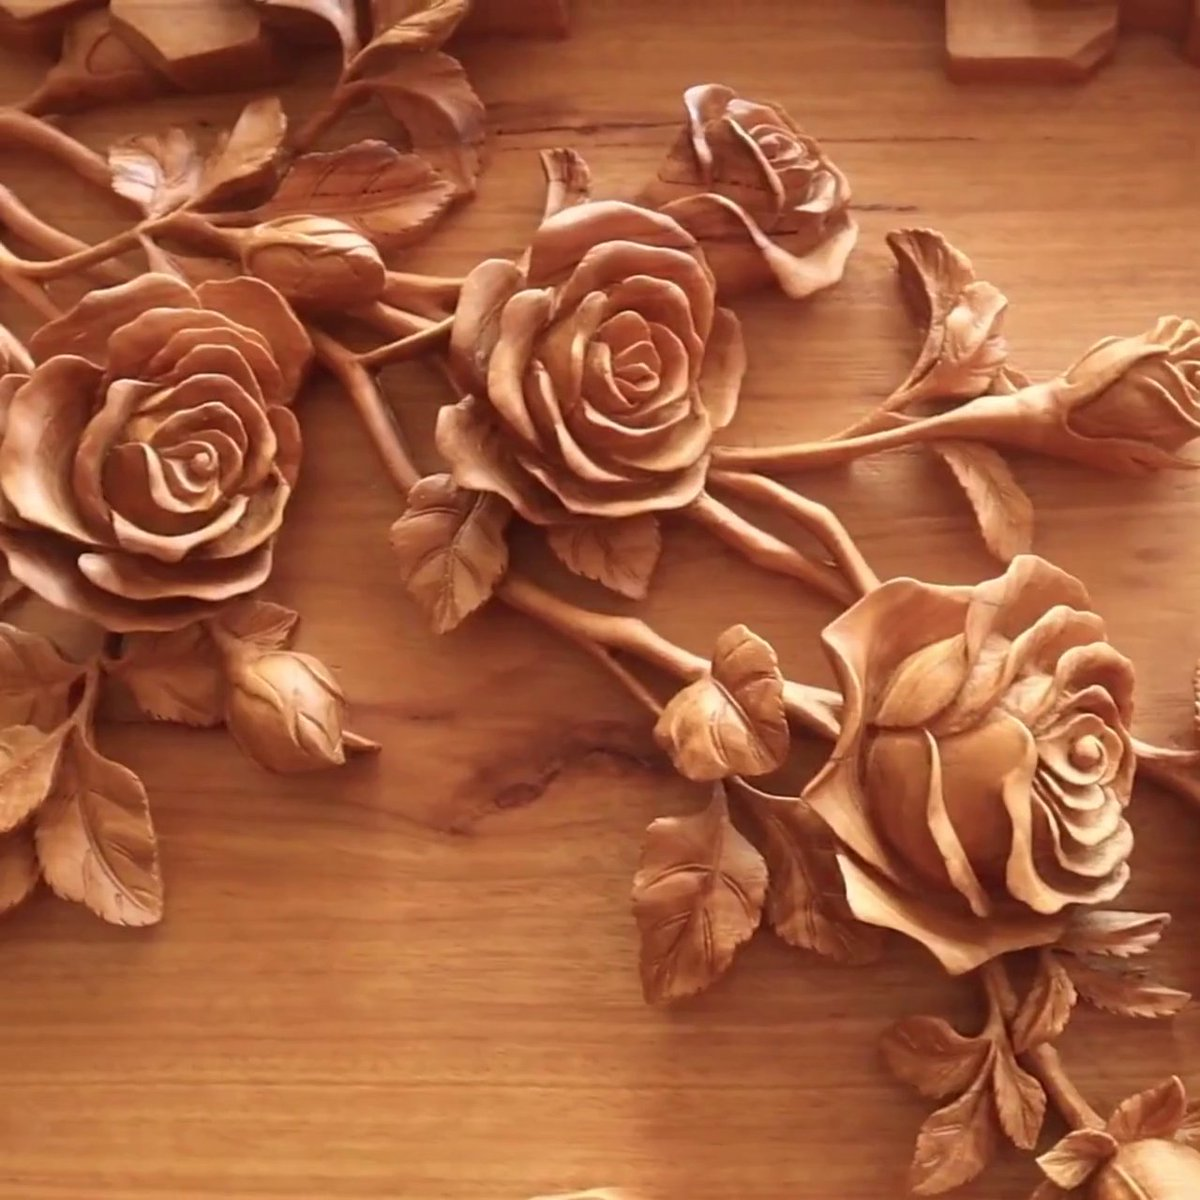 Ok, but how beautiful are these roses carved out of wood? 😍 → https://t.co/2Sbyitak2z https://t.co/rhsB2wCd0d